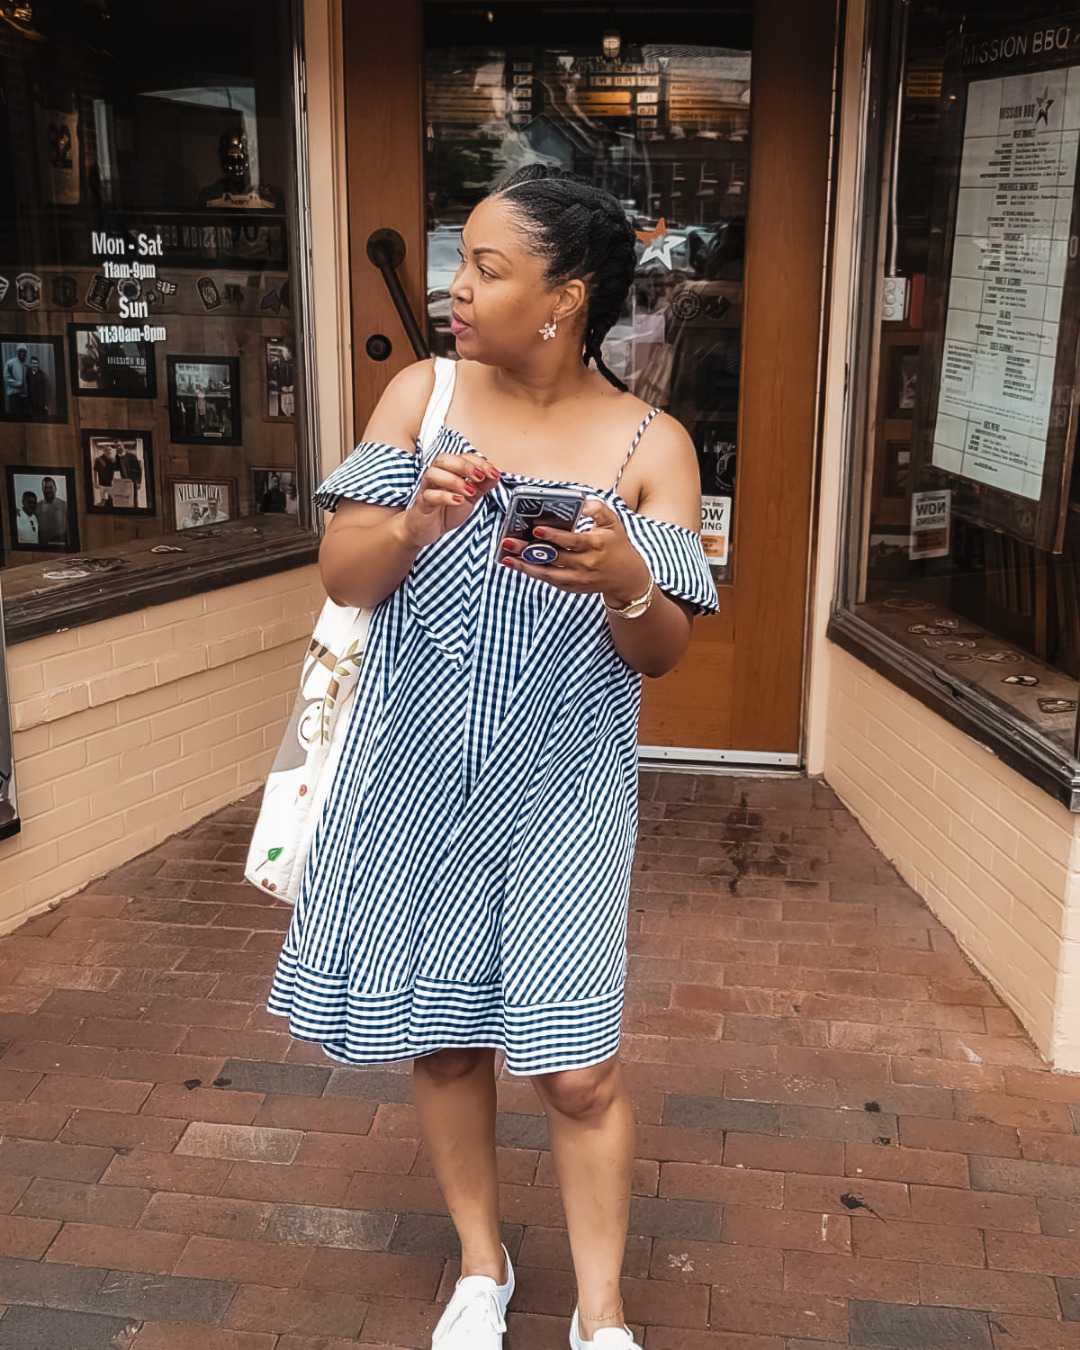 DC blogger Rogan Smith wears a blue and white babydoll dress as she stands in downtown Annapolis in Maryland